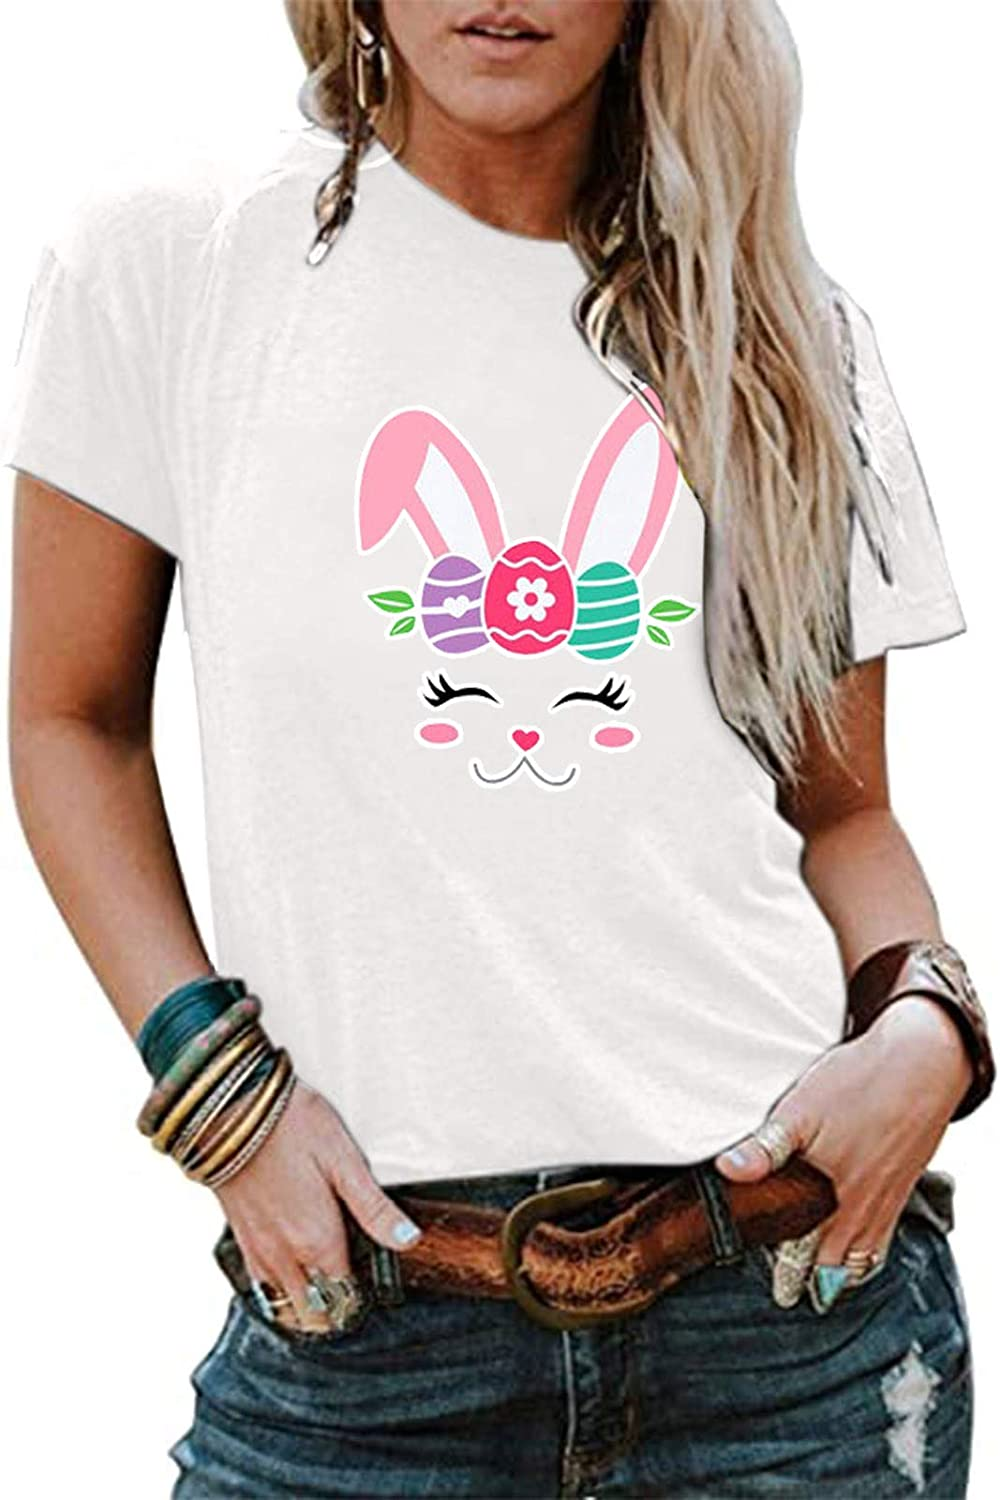 Easter Shirts for Women,Womens T Shirts Cute Easter Print Graphic Tees Summer Funny Short Sleeve Tops T-Shirt Tunics Blouses